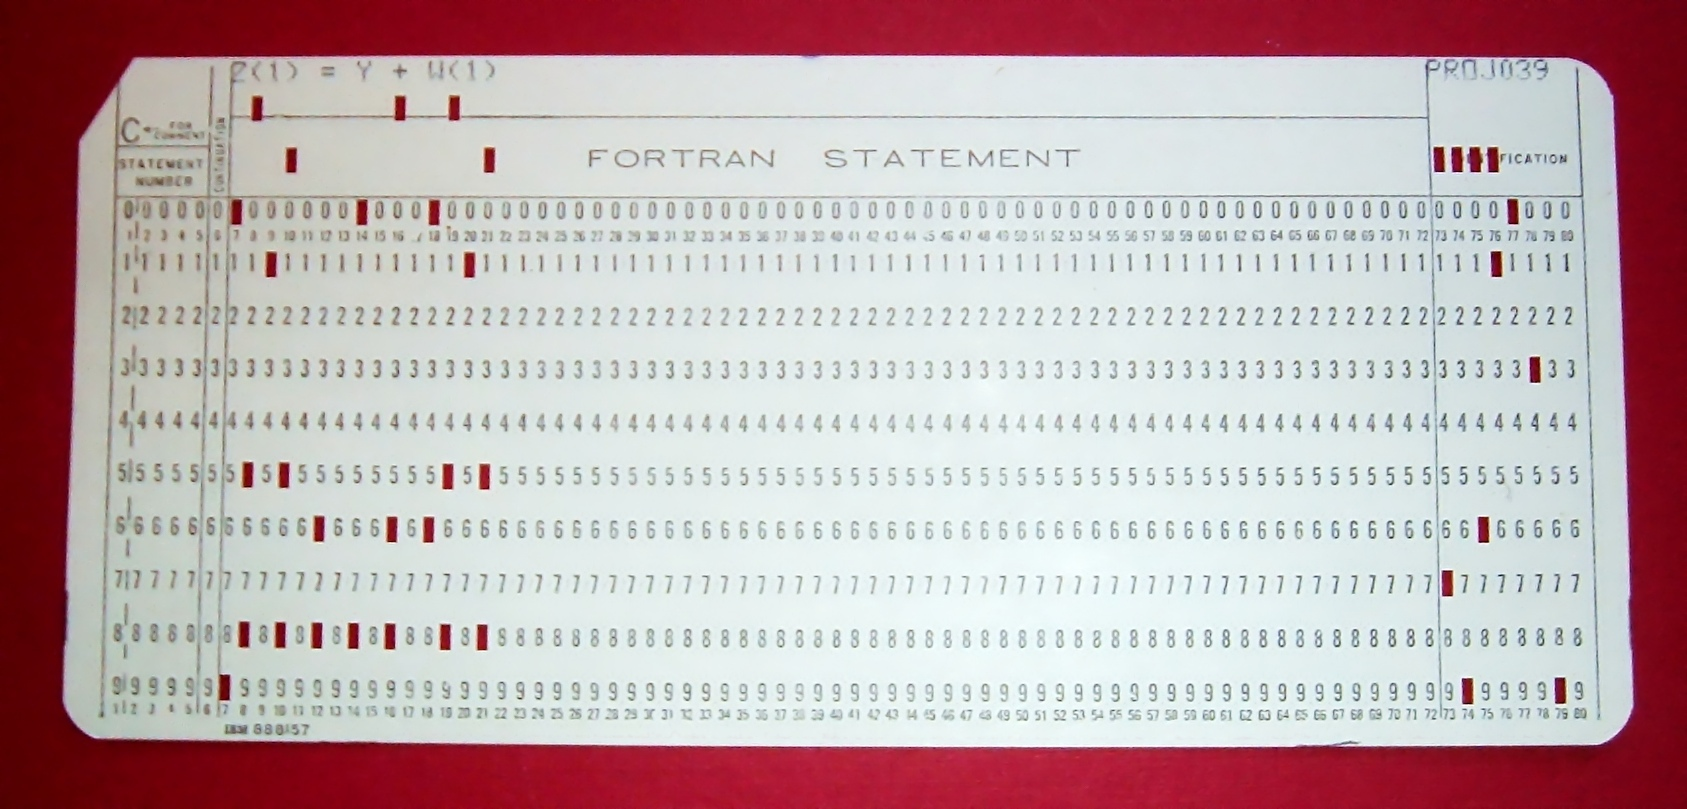 Depiction of Fortran